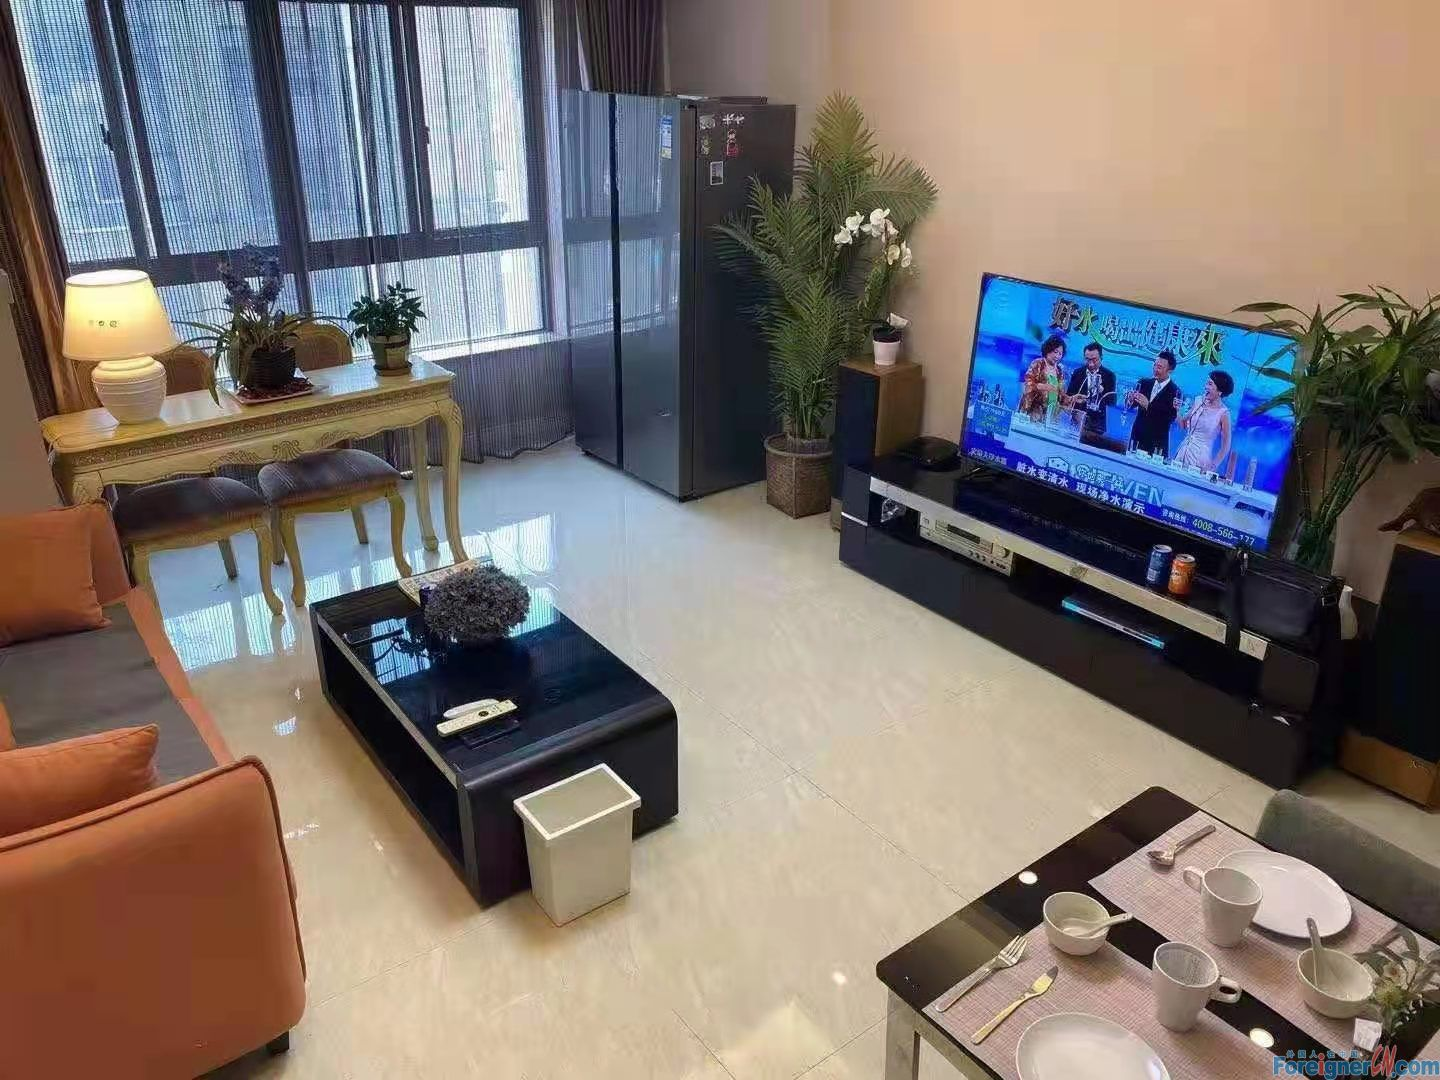 Wonderful Loft in SND to Rent/ Yushan Plaza- 2 bdr and 2 bath; 140sqm/ New decoration-Brand new and Fully furnished/ Walking distance to Huaihai Strret-Convenient public transportation